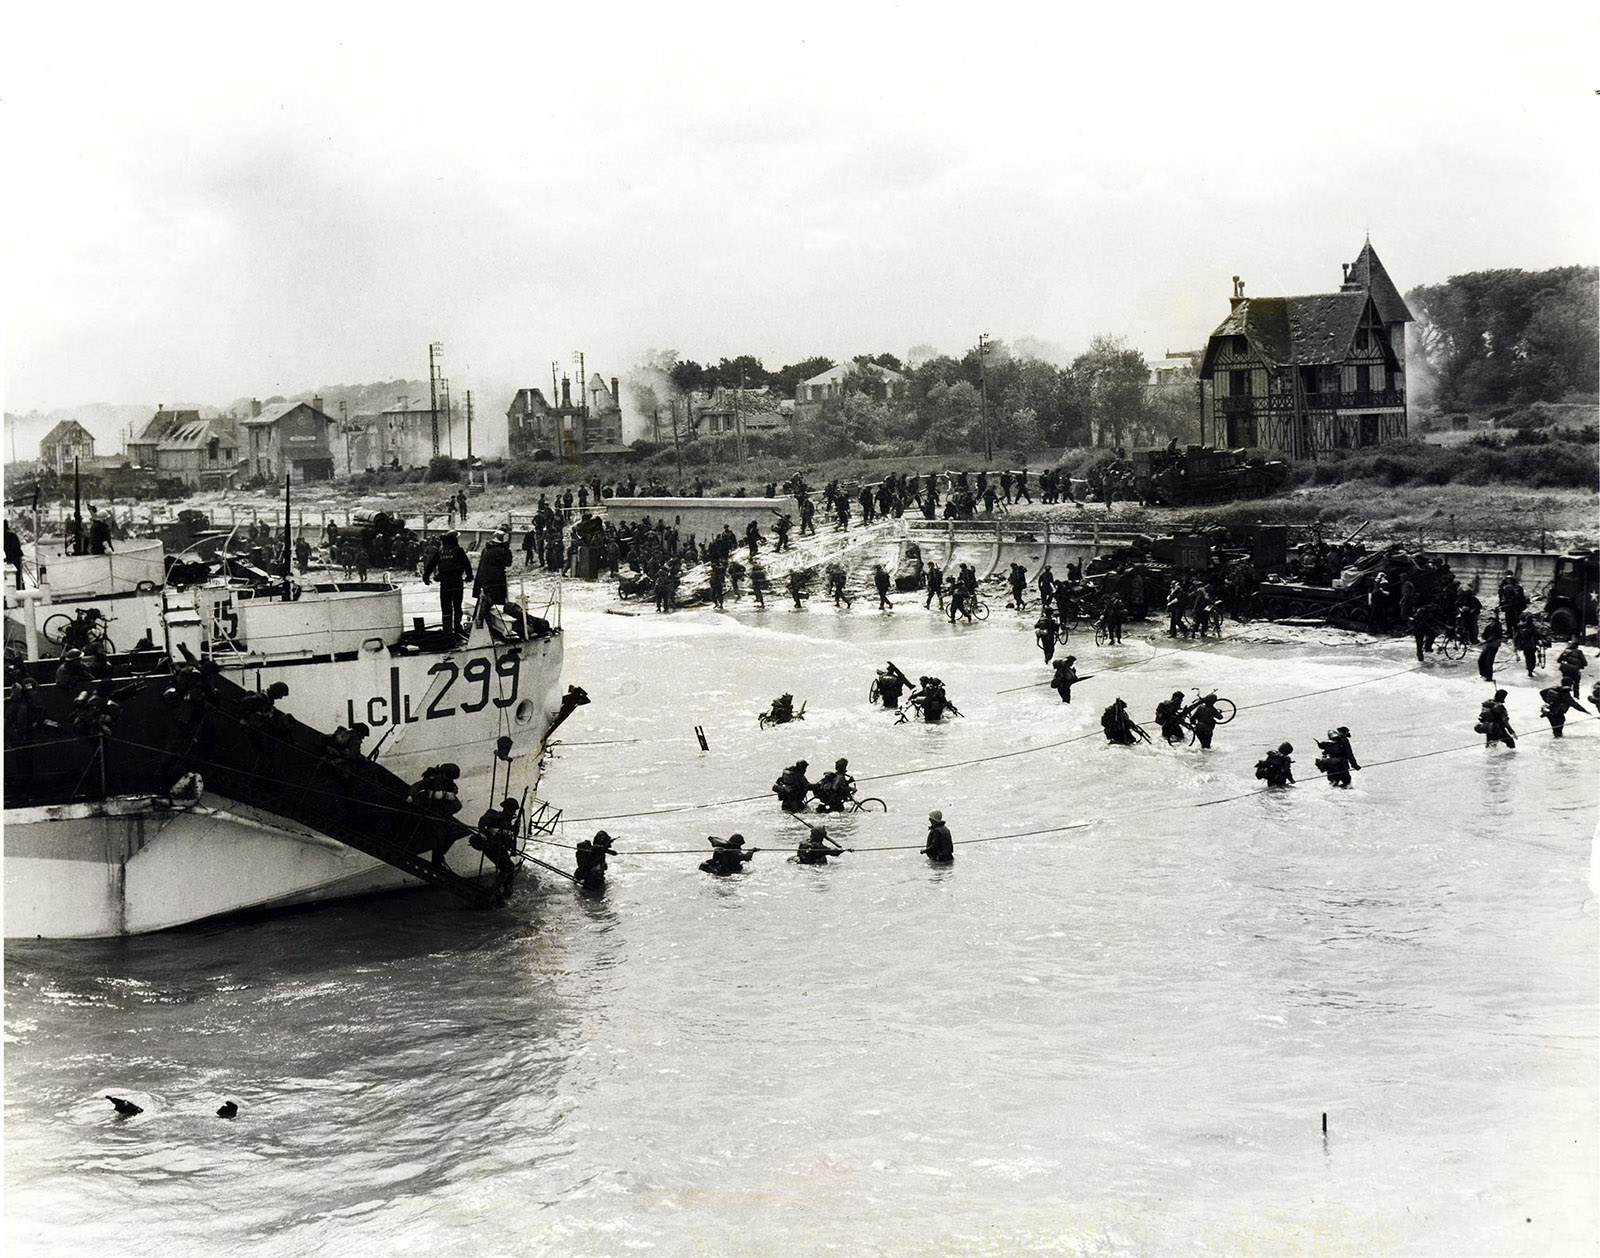 Troops arrive in Normandy